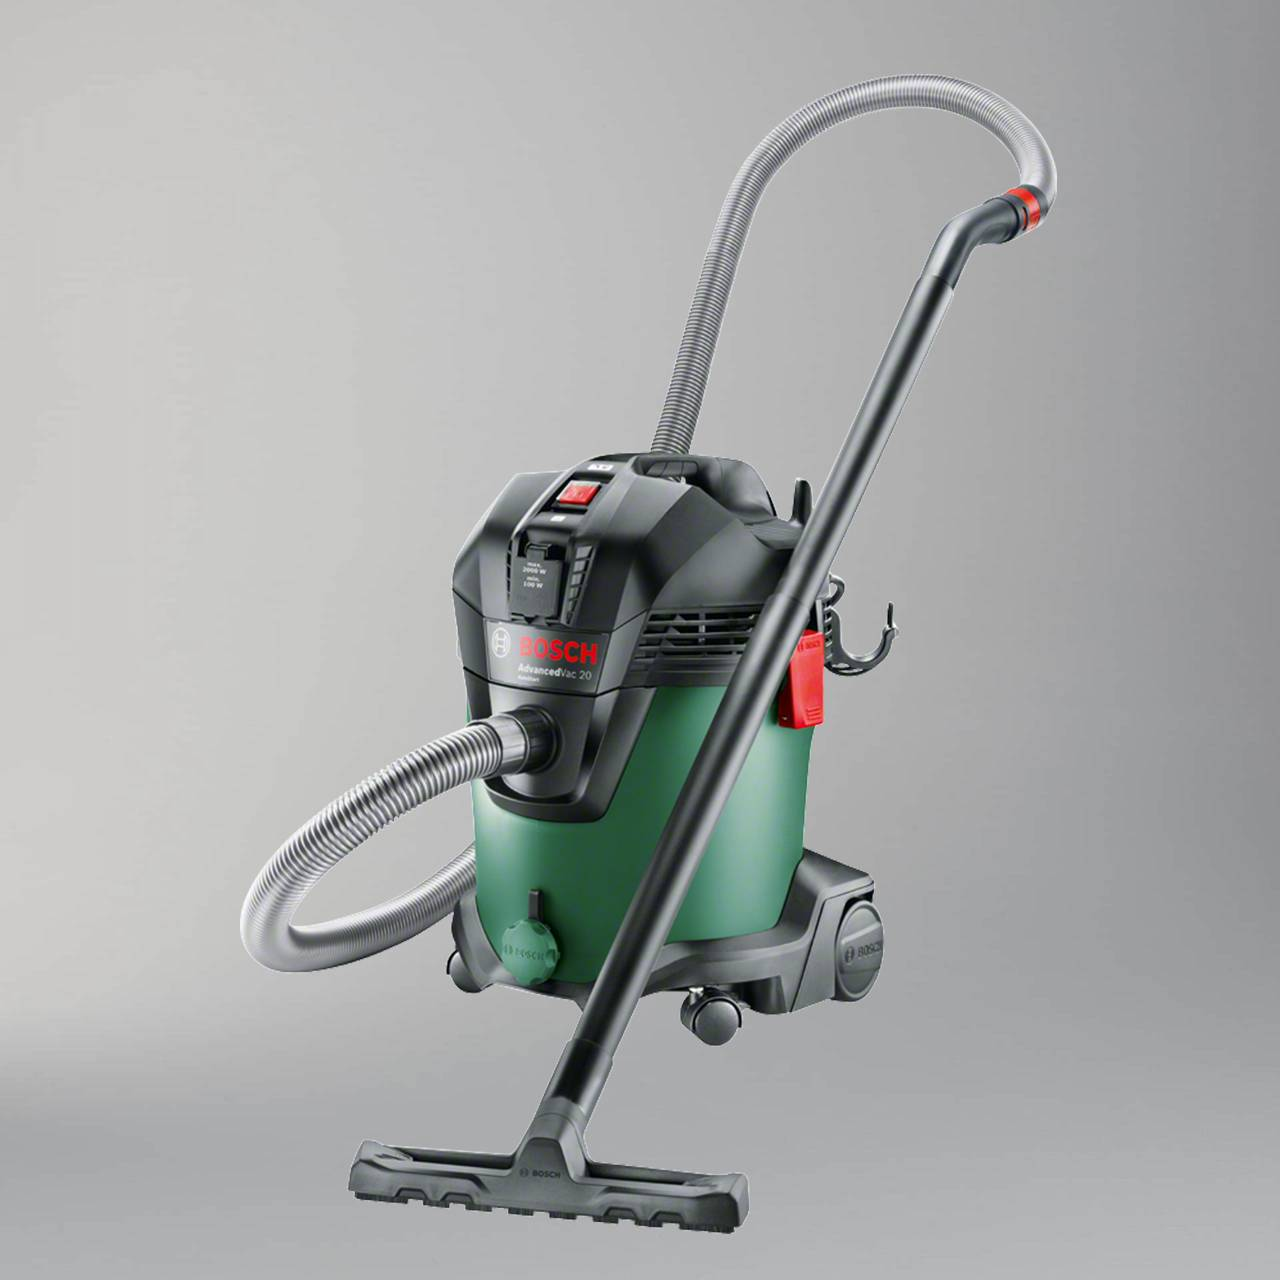 Bosch Aspirateur Bosch Advanced Vac 20